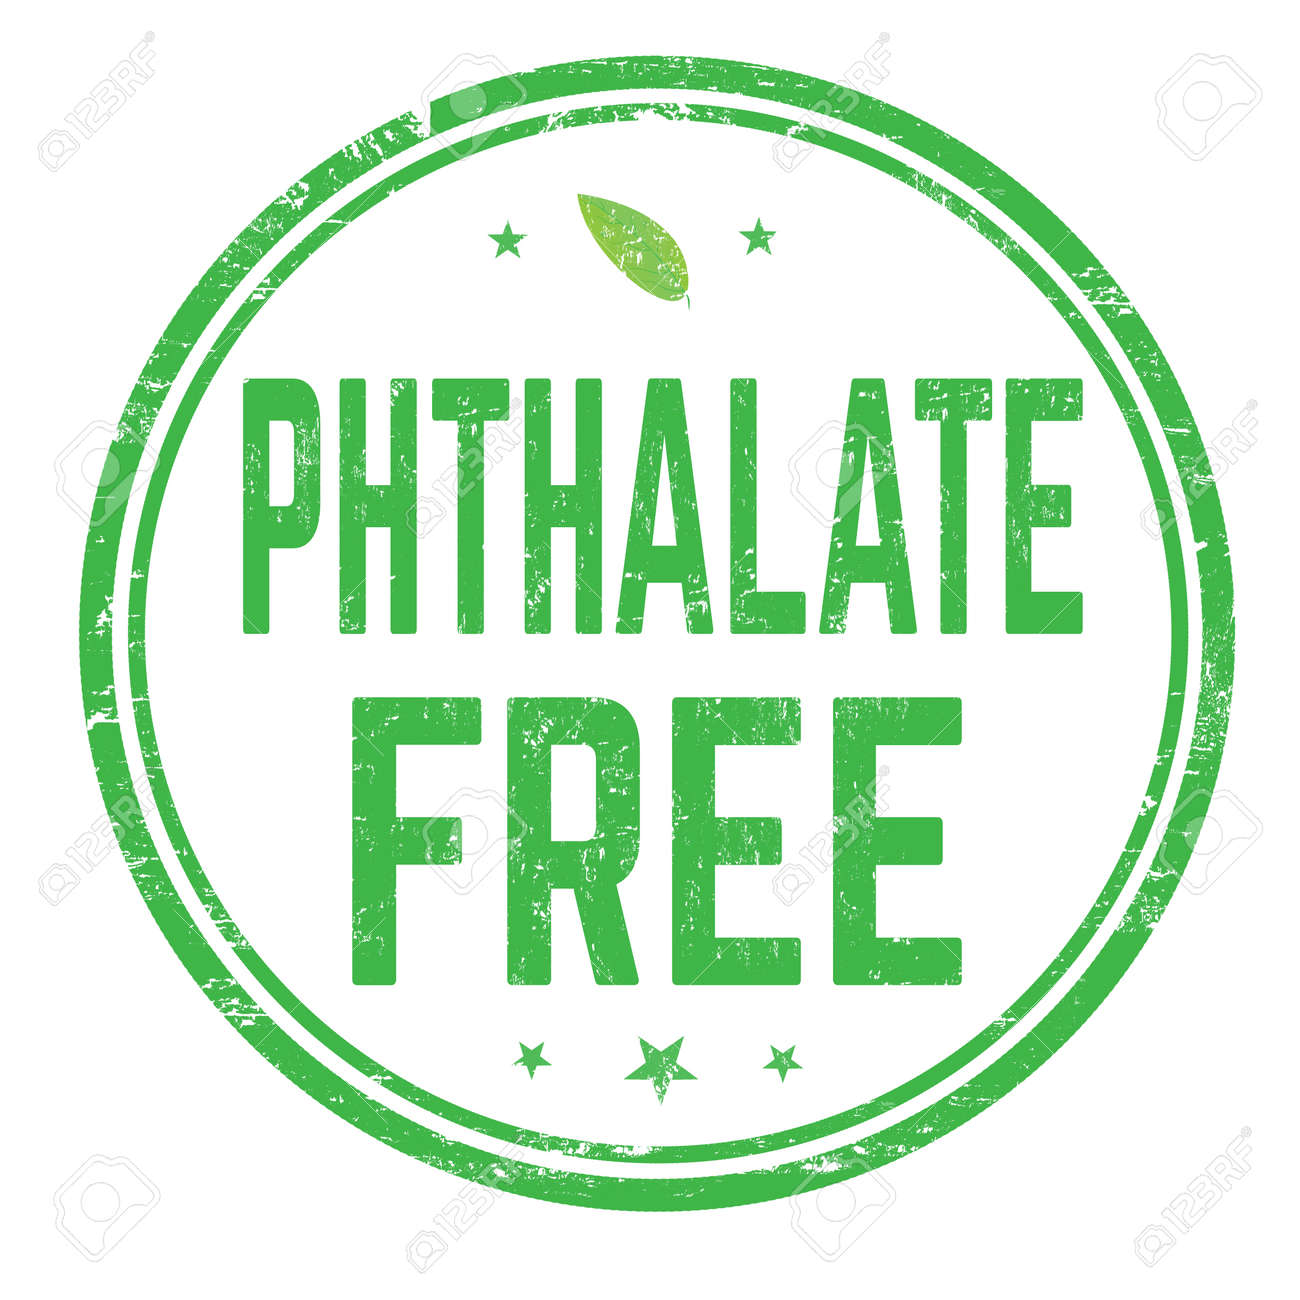 Phthalate free sign or stamp on white background, vector illustration - 106933755